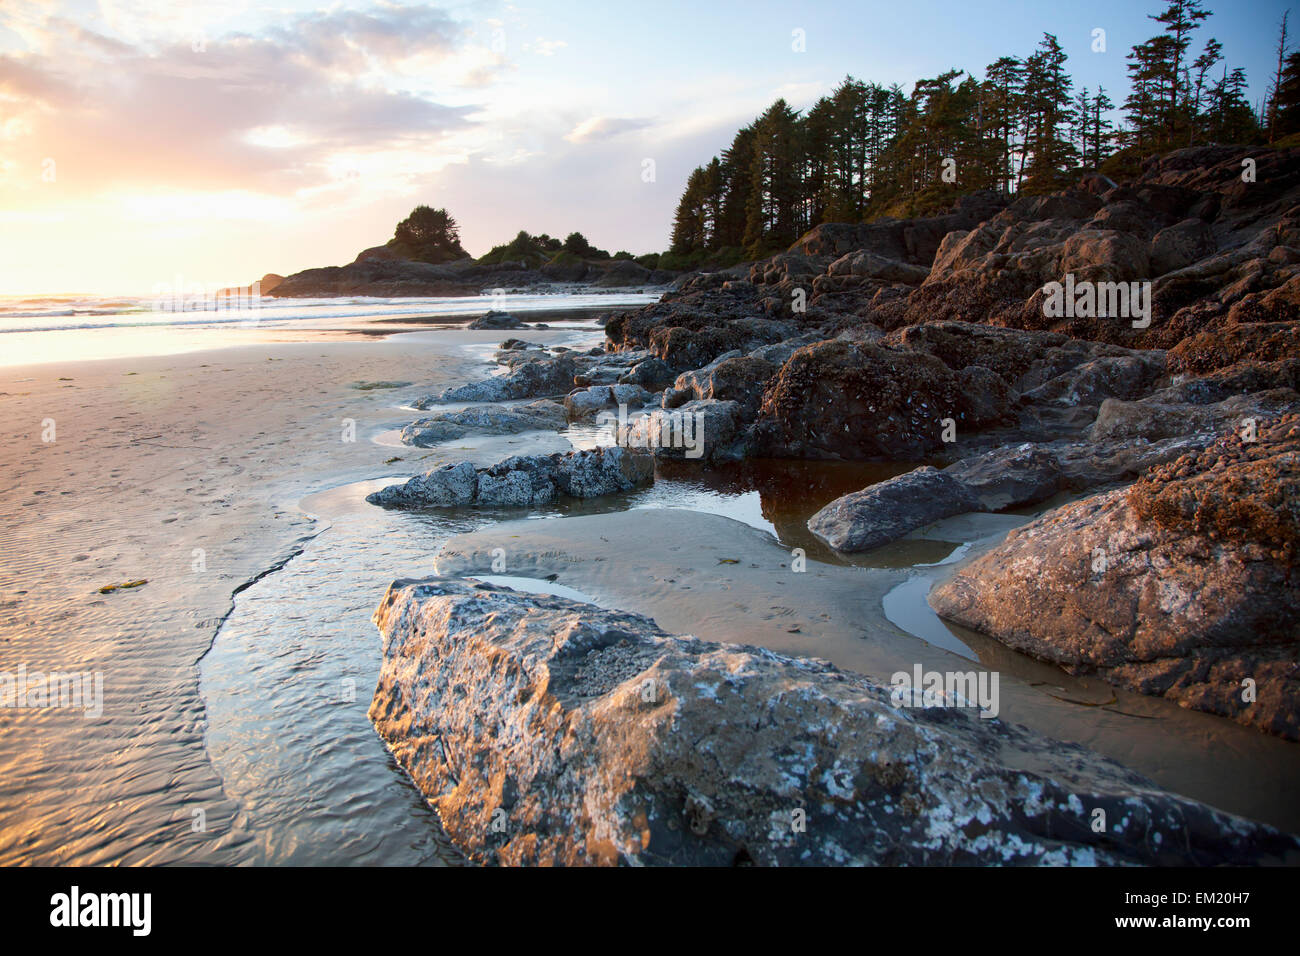 Cox bay and sunset point at low tide and at sunset near tofino cox bay and sunset point at low tide and at sunset near tofino british columbia canada nvjuhfo Image collections